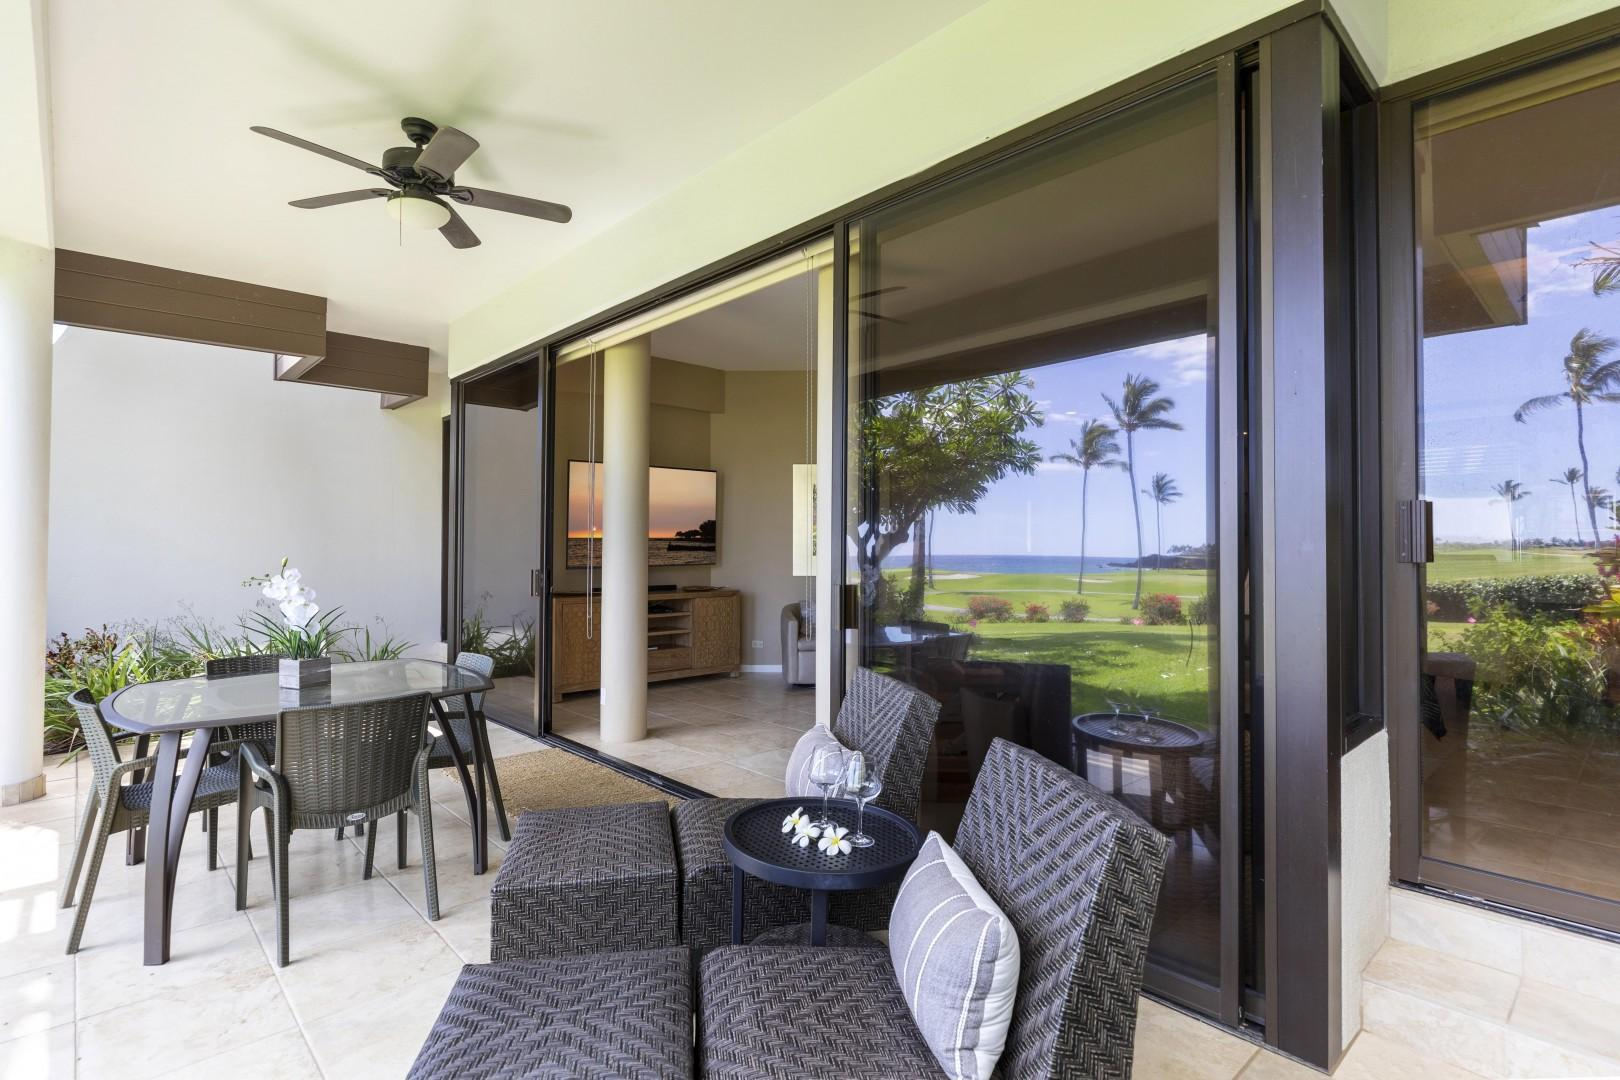 Read a book or take in the beauty from the lounge chairs on the lanai.